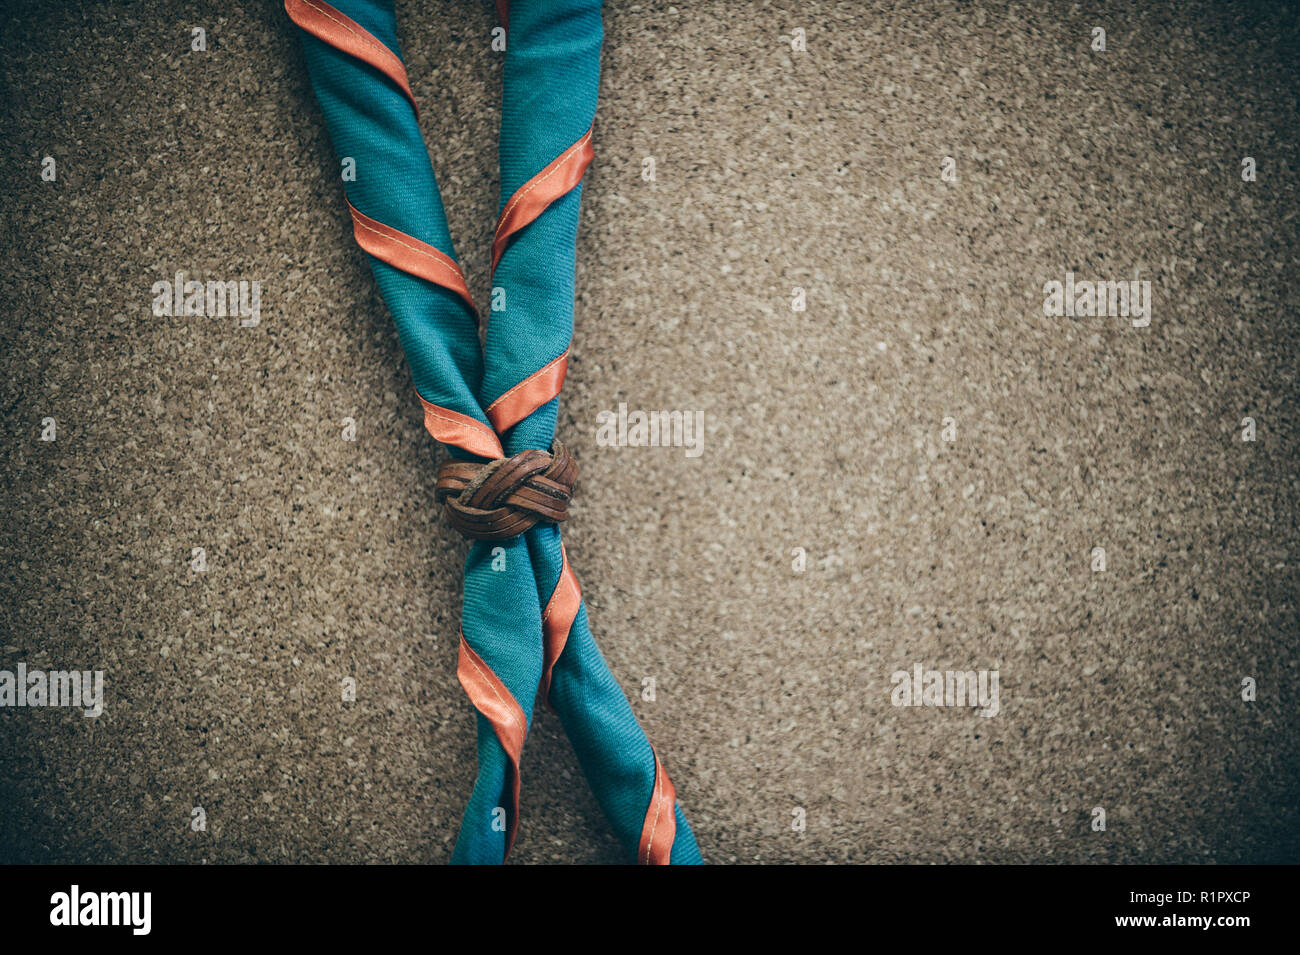 Orange,blue and yellow frame scout scarf. Concept is learning Scout subject. - Stock Image